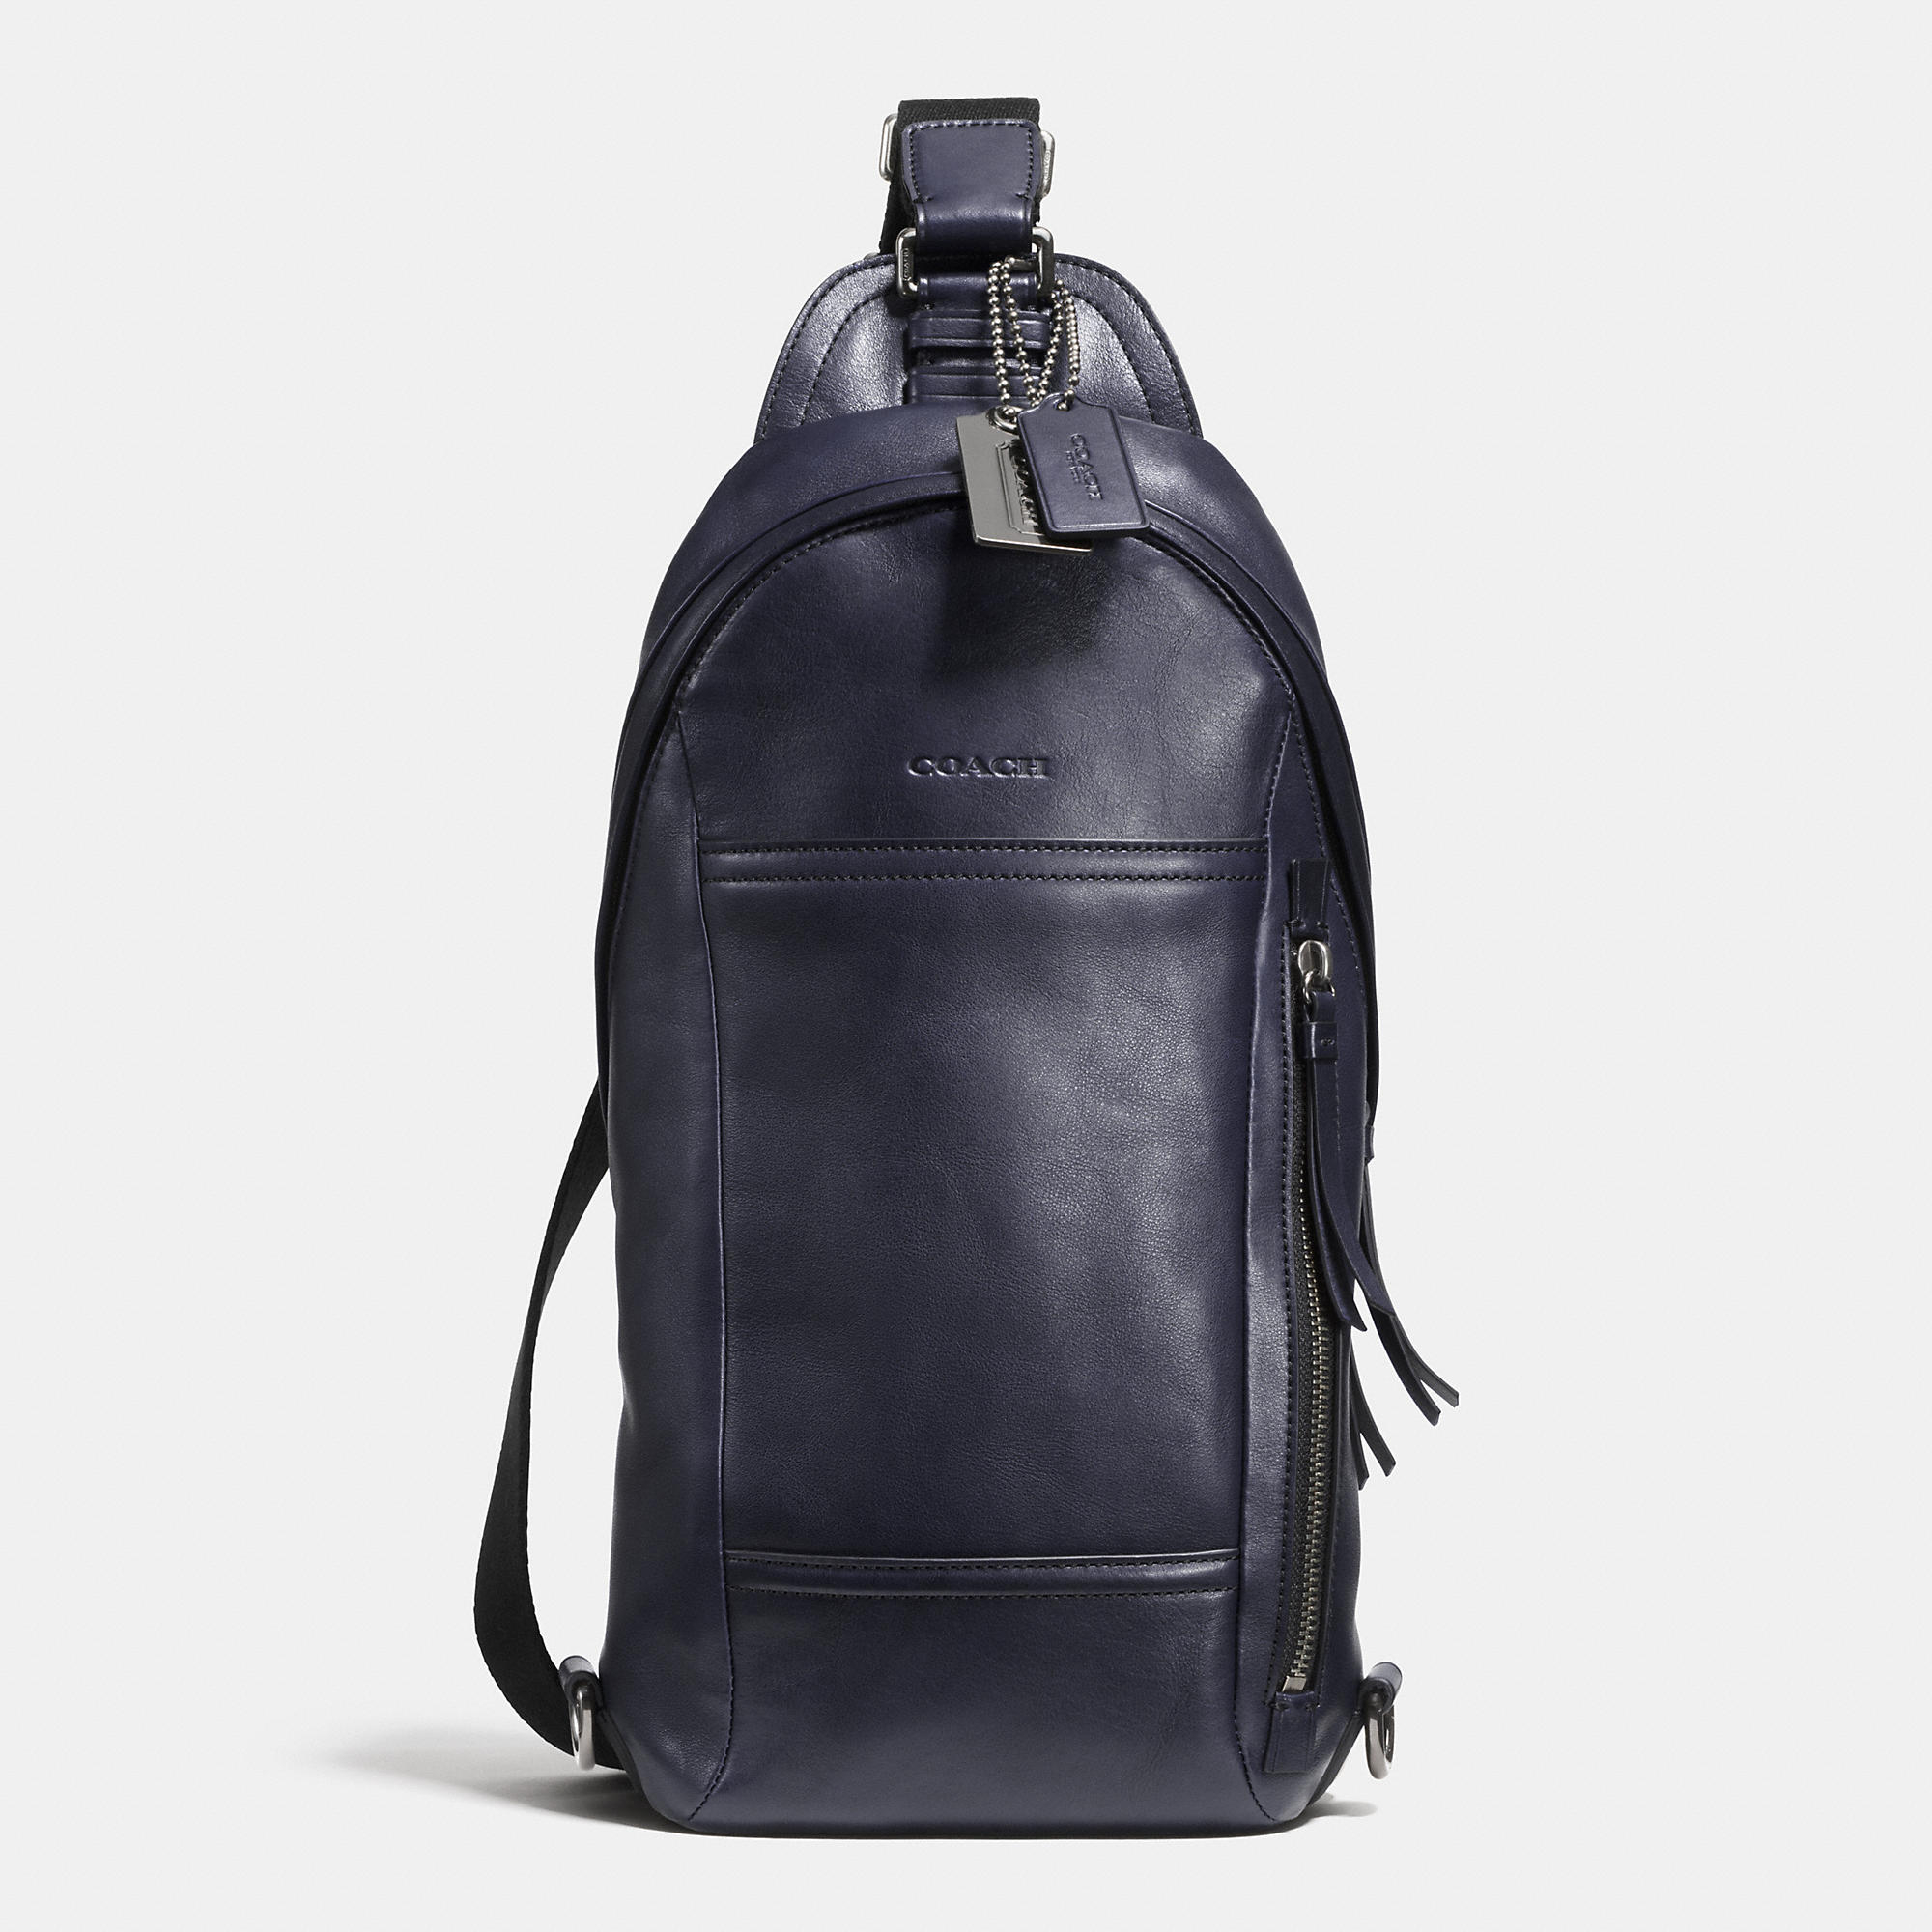 Lyst - COACH Bleecker Convertible Sling Pack In Leather in ...